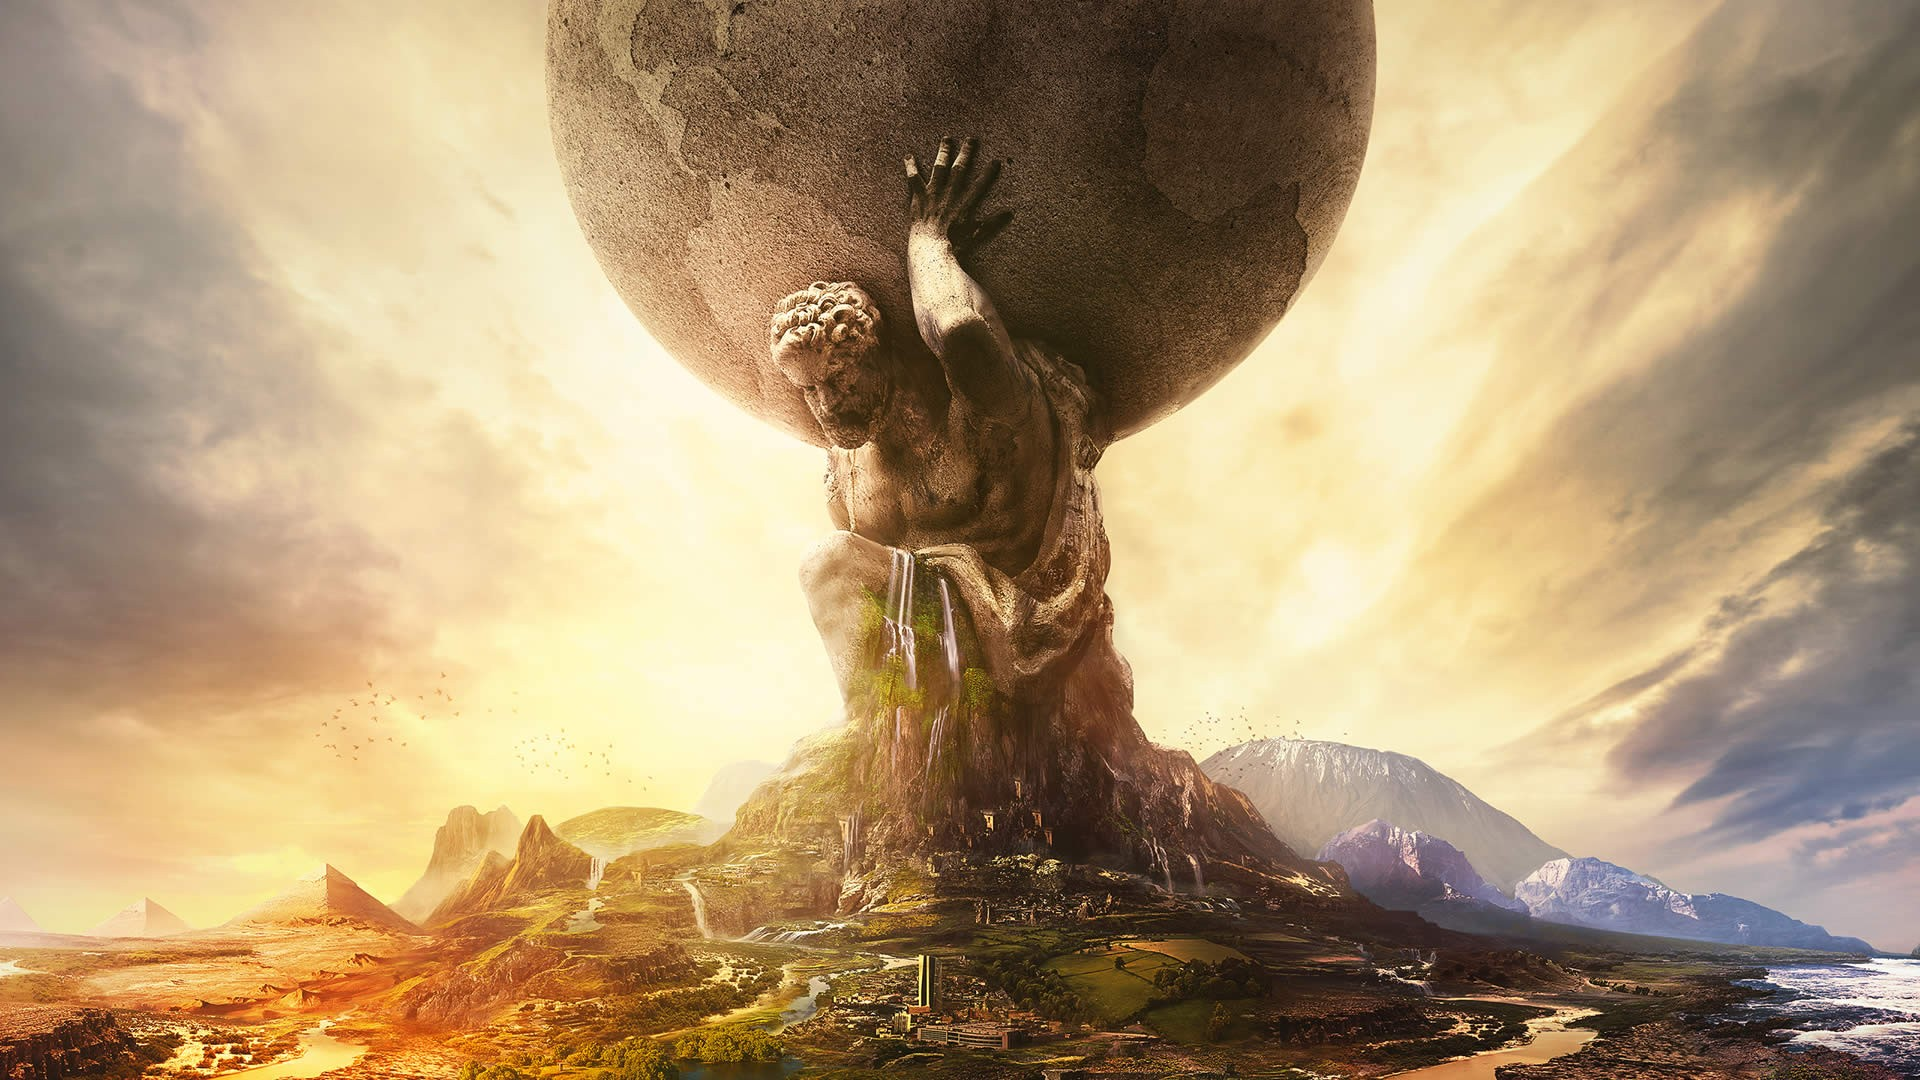 S Hd Image Wallpaper: Sid Meier's Civilization VI Wallpapers, Pictures, Images